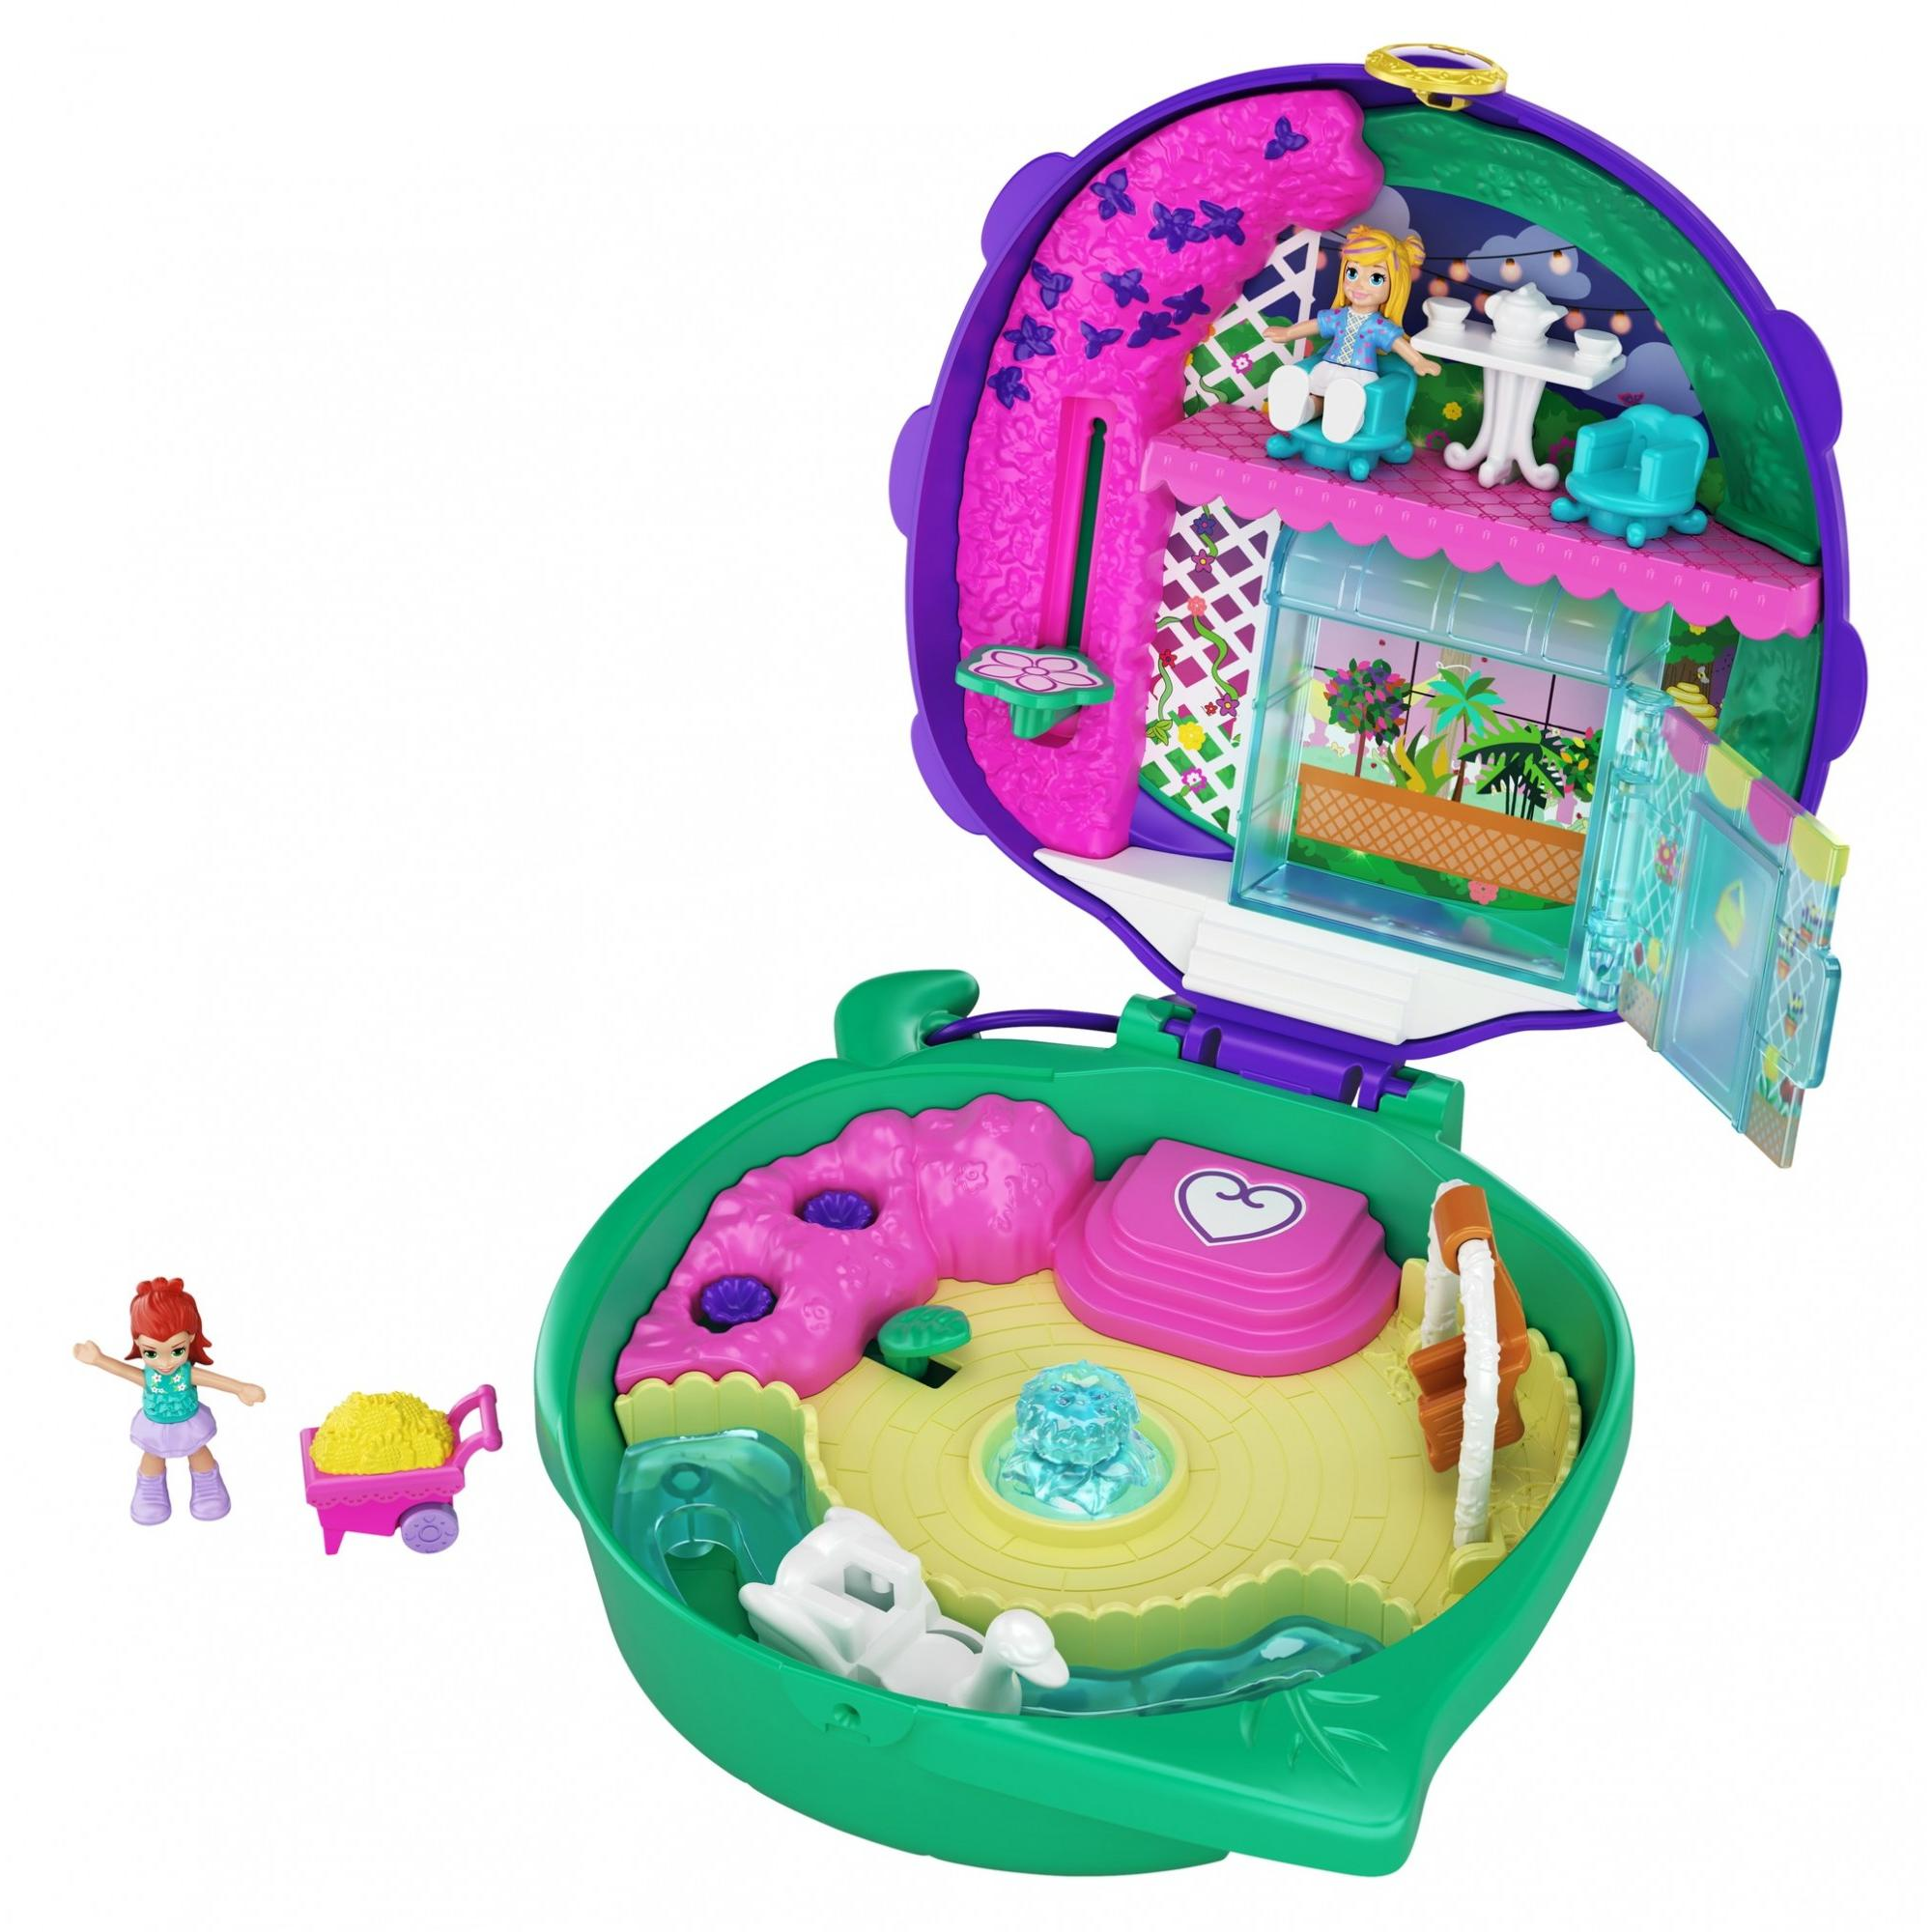 Alien Figure /& Sticker Sheet; for Ages 4 Years Old /& Up Lunar Vehicle Polly Pocket Saturn Space Explorer Compact with Fun Reveals Micro Polly and Lila Dolls